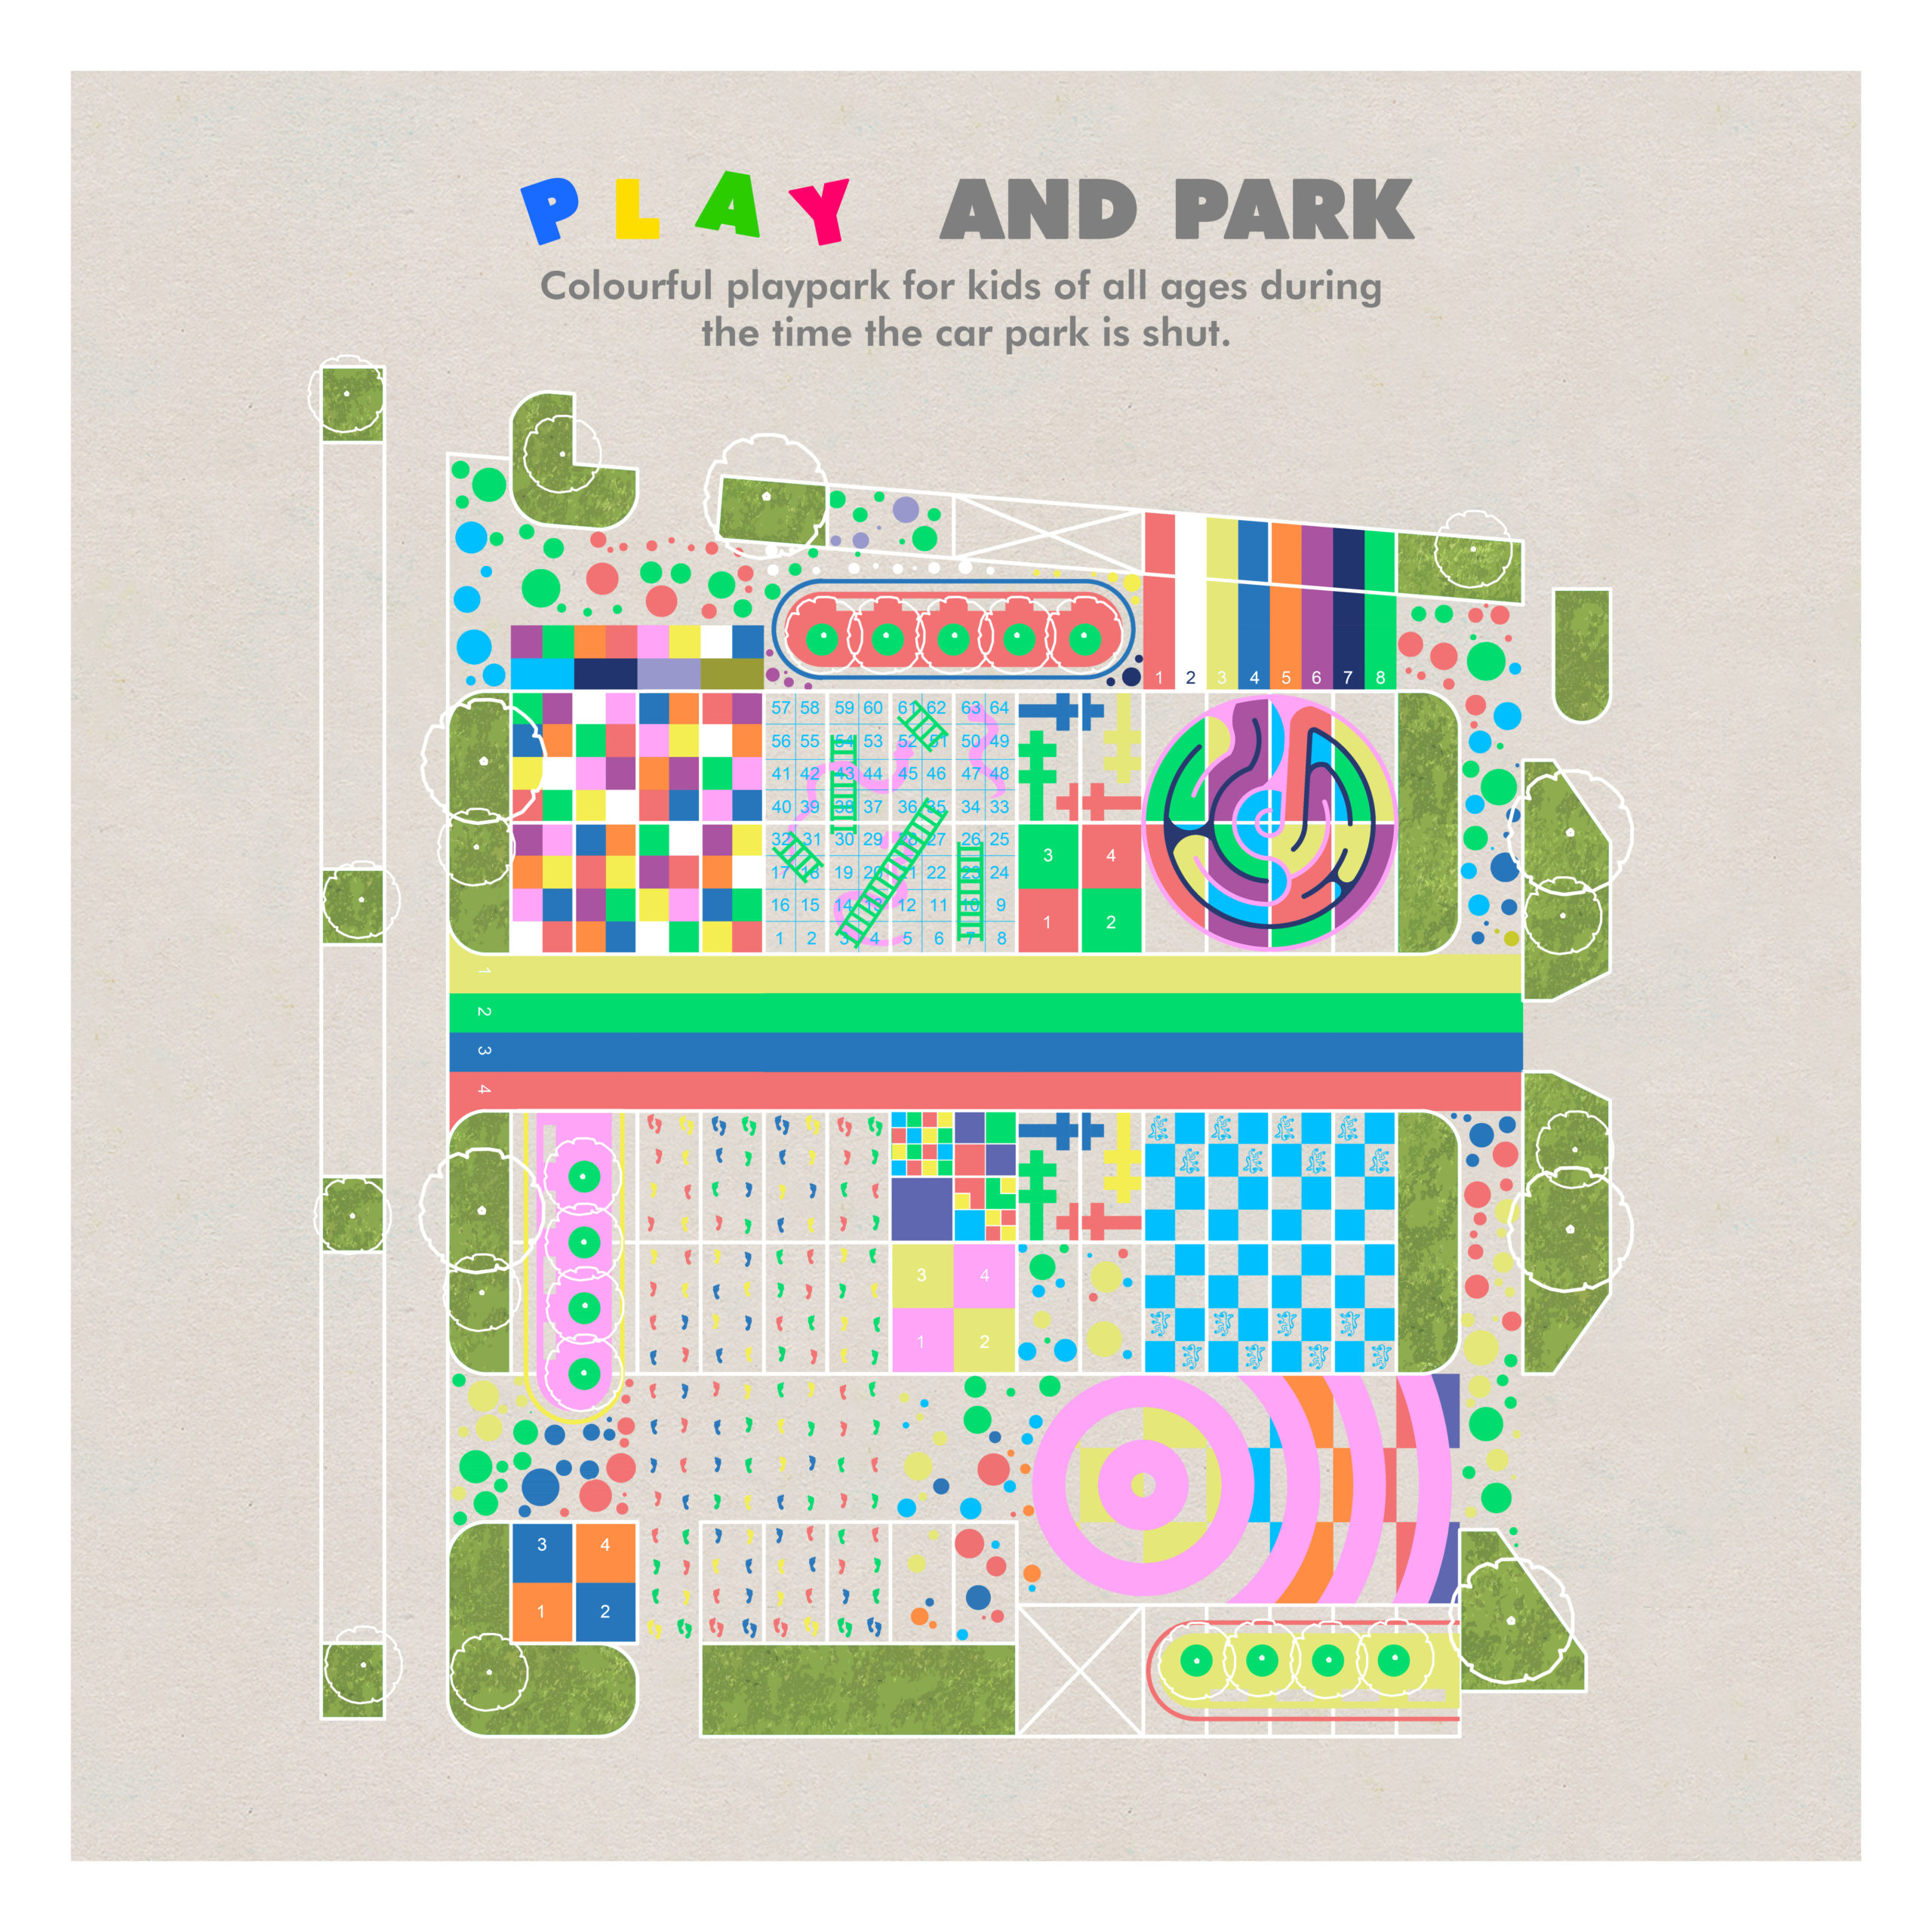 Play and Park